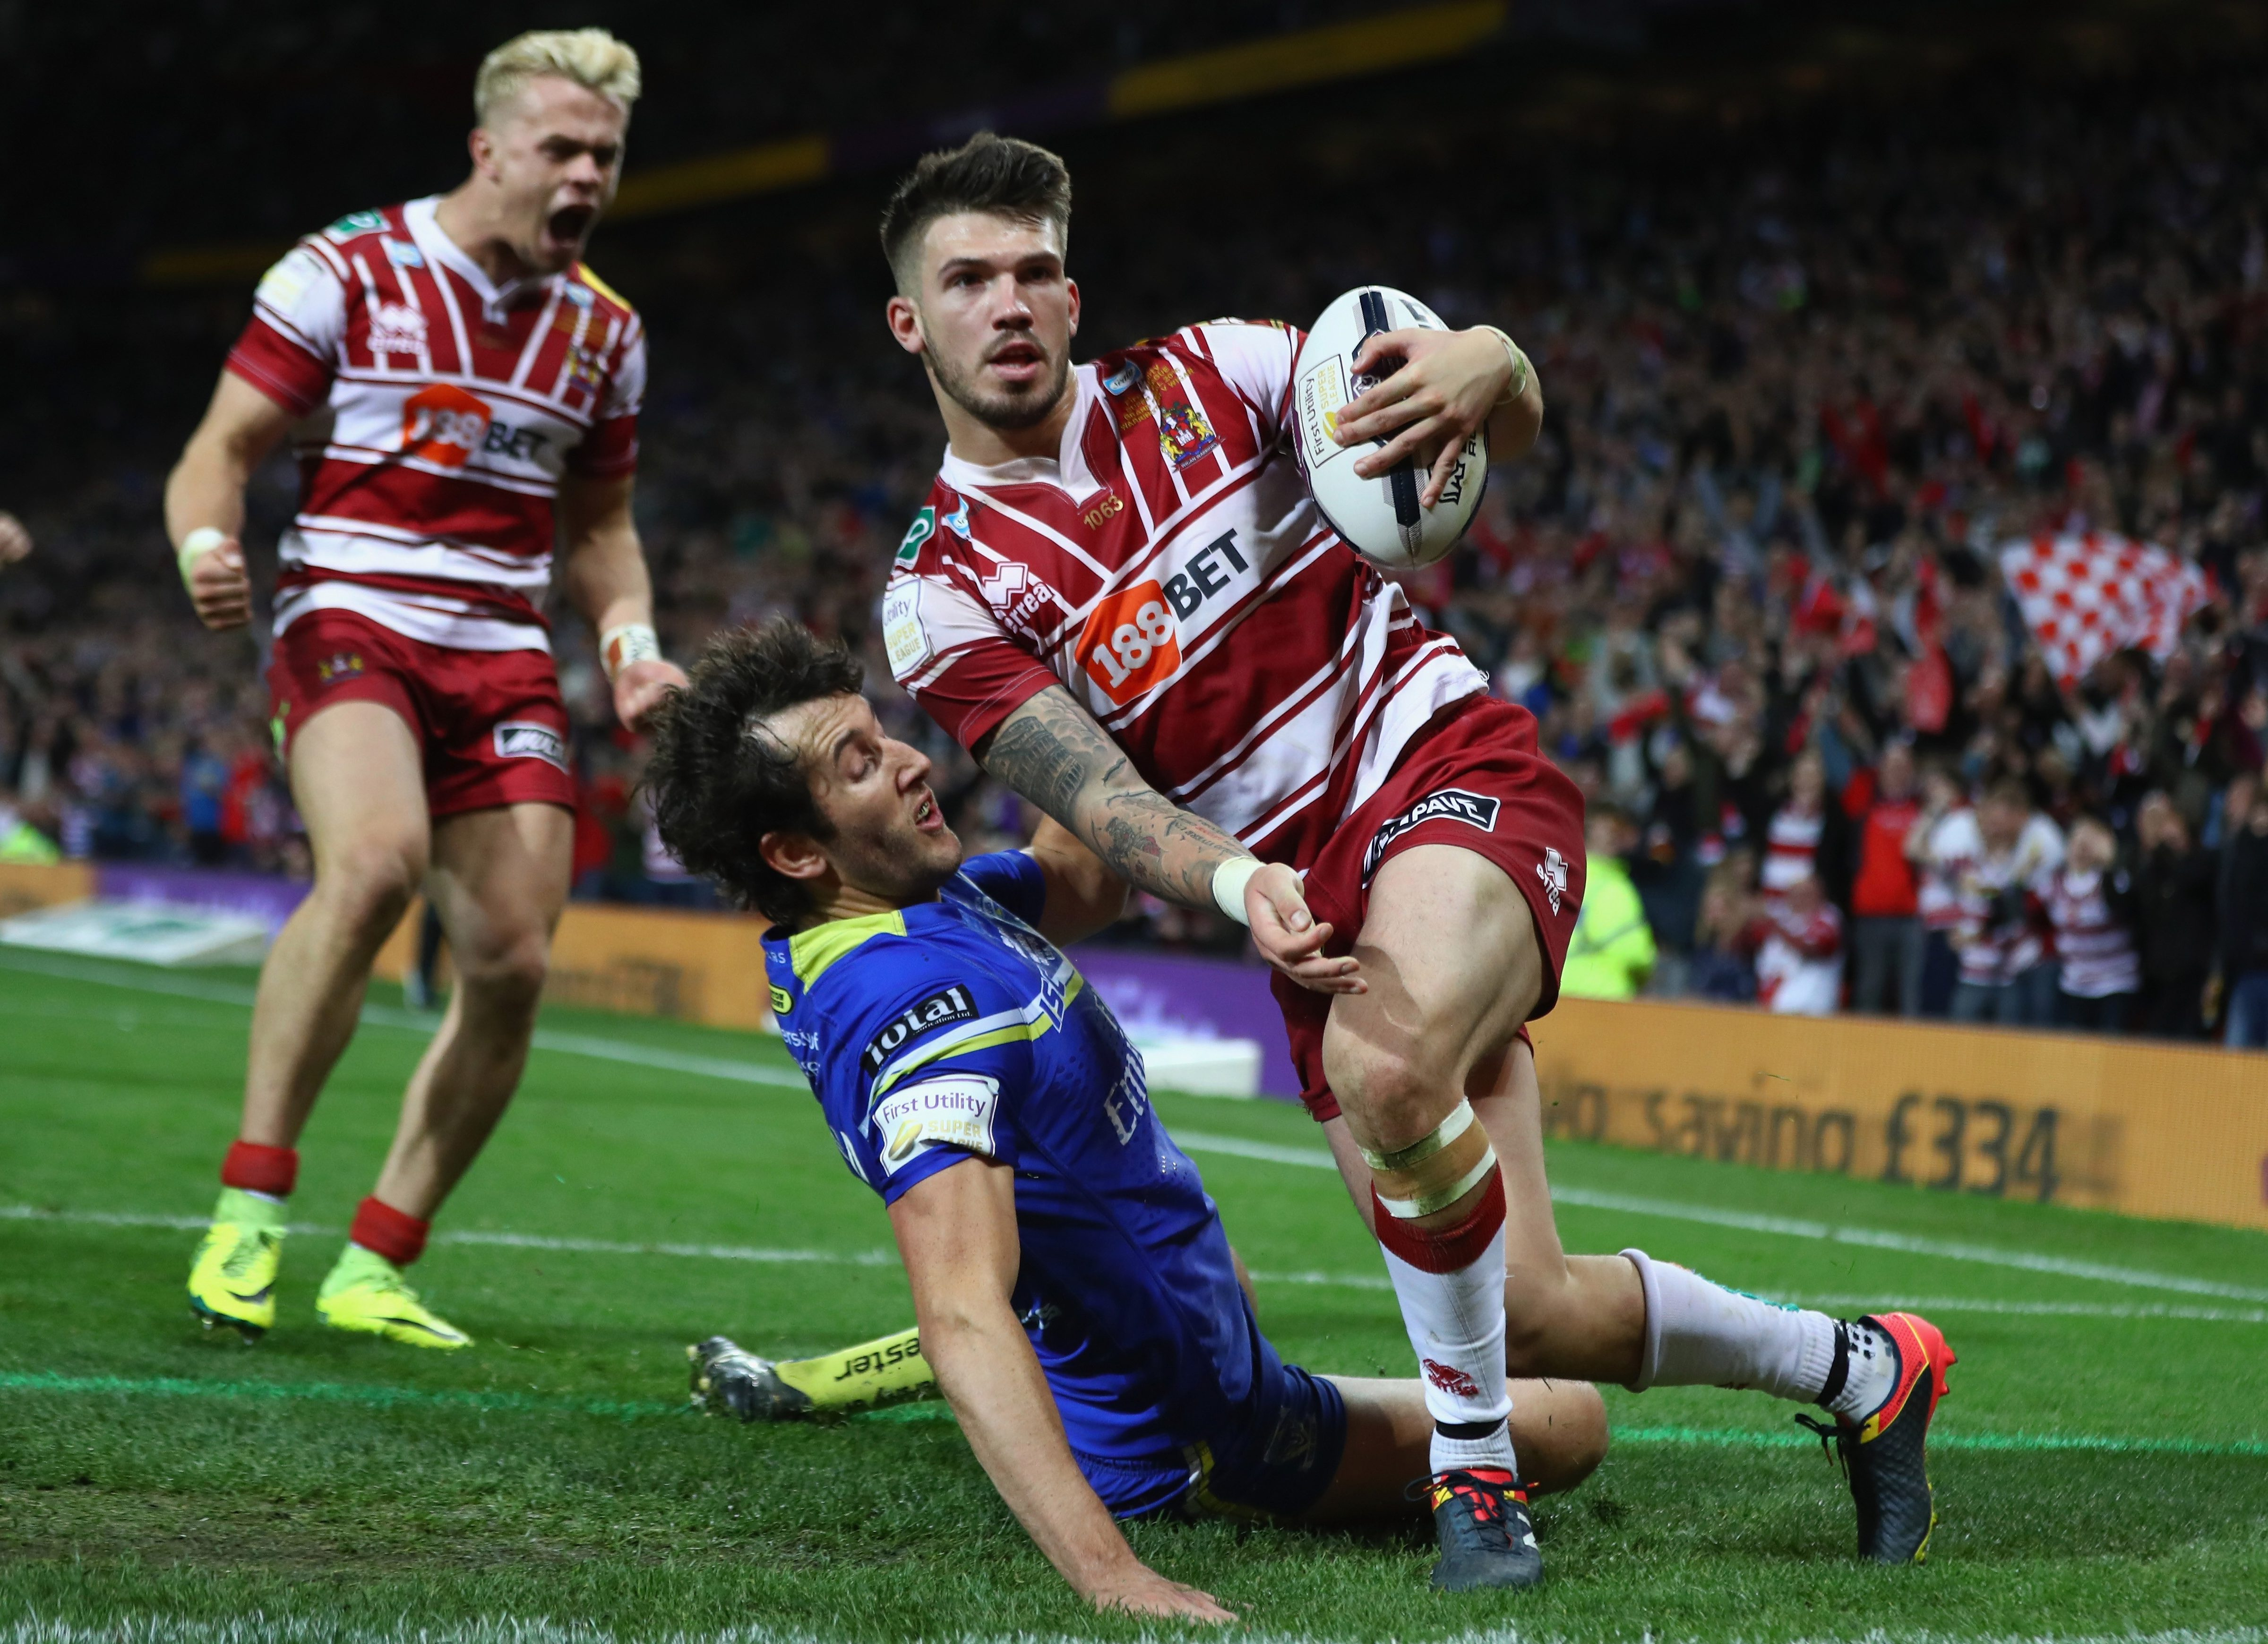 Wigan hope to repeat their 2016 Grand Final victory this year